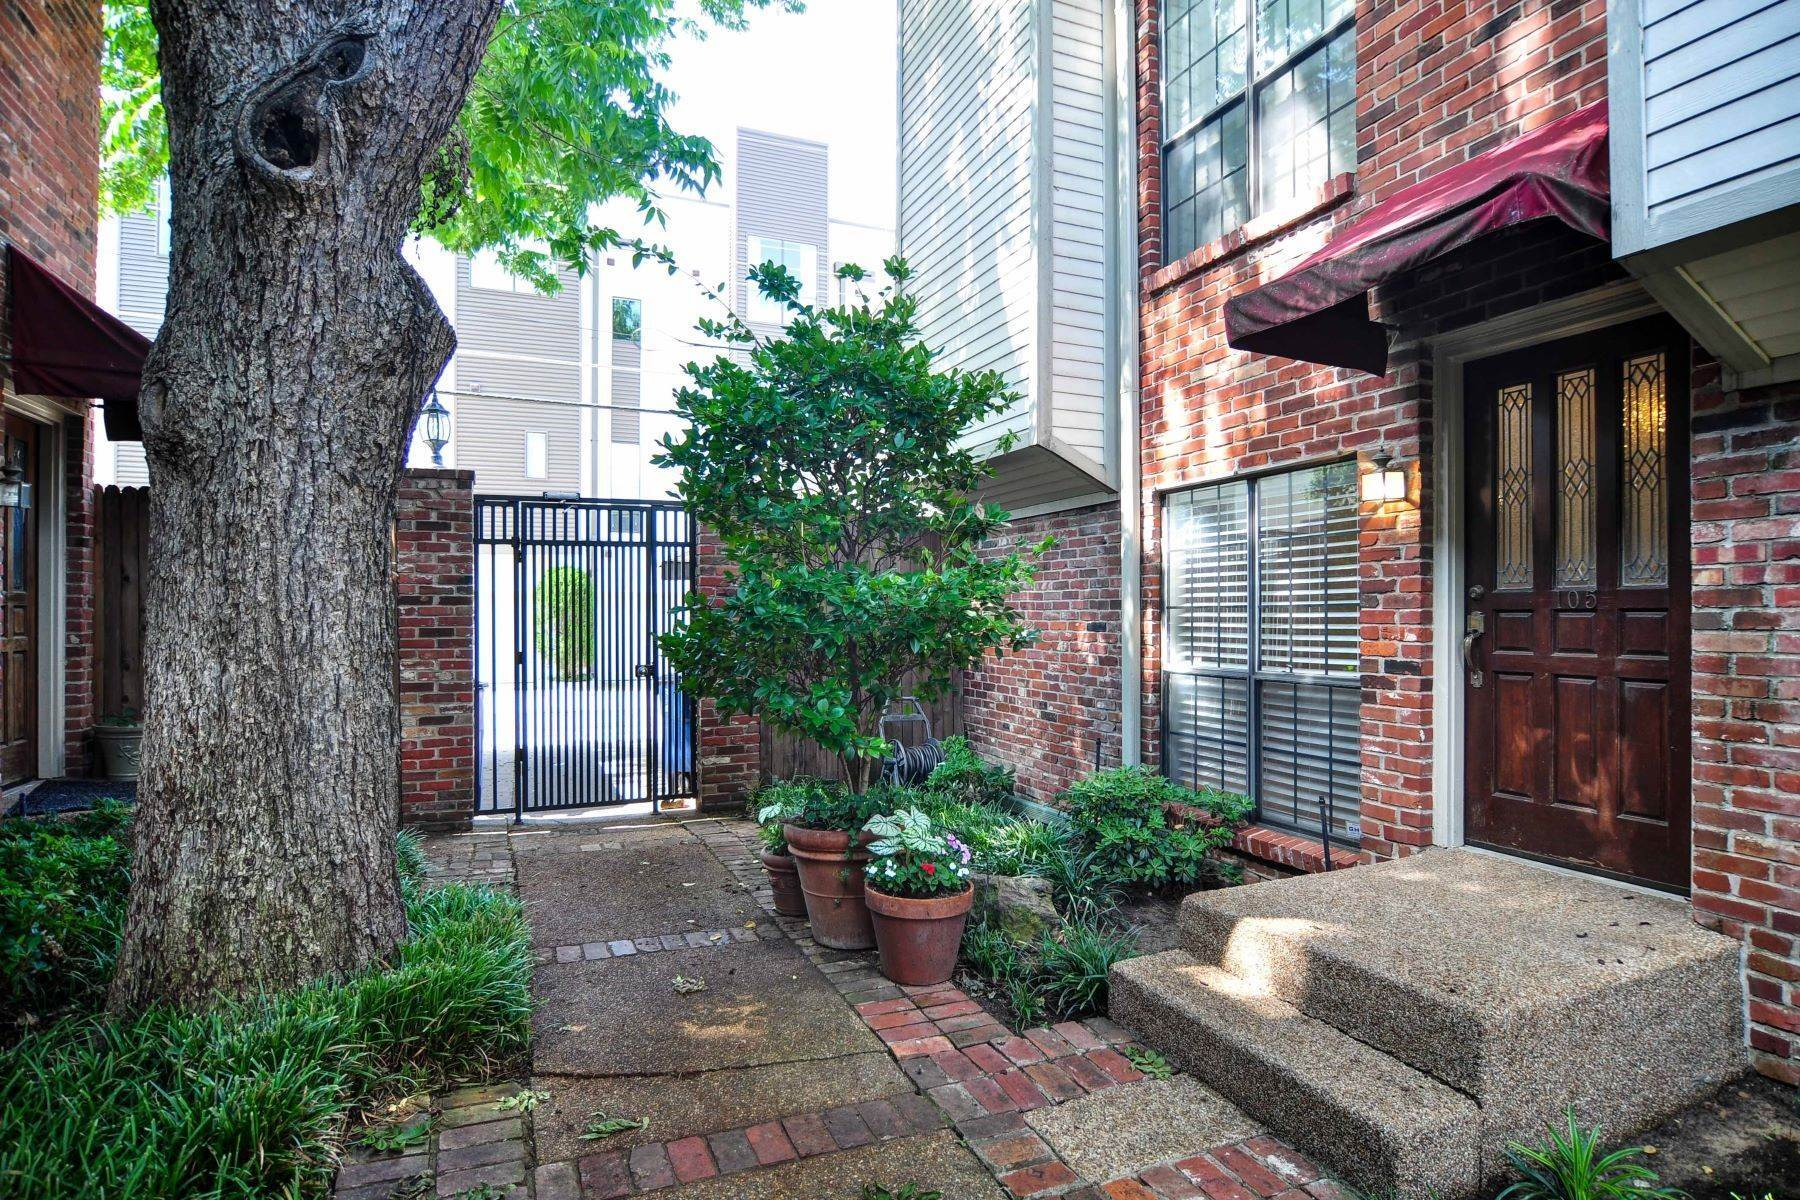 Condominiums for Sale at 4130 Wycliff Avenue, Dallas, TX, 75219 4130 Wycliff Avenue, Unit# 105 Dallas, Texas 75219 United States